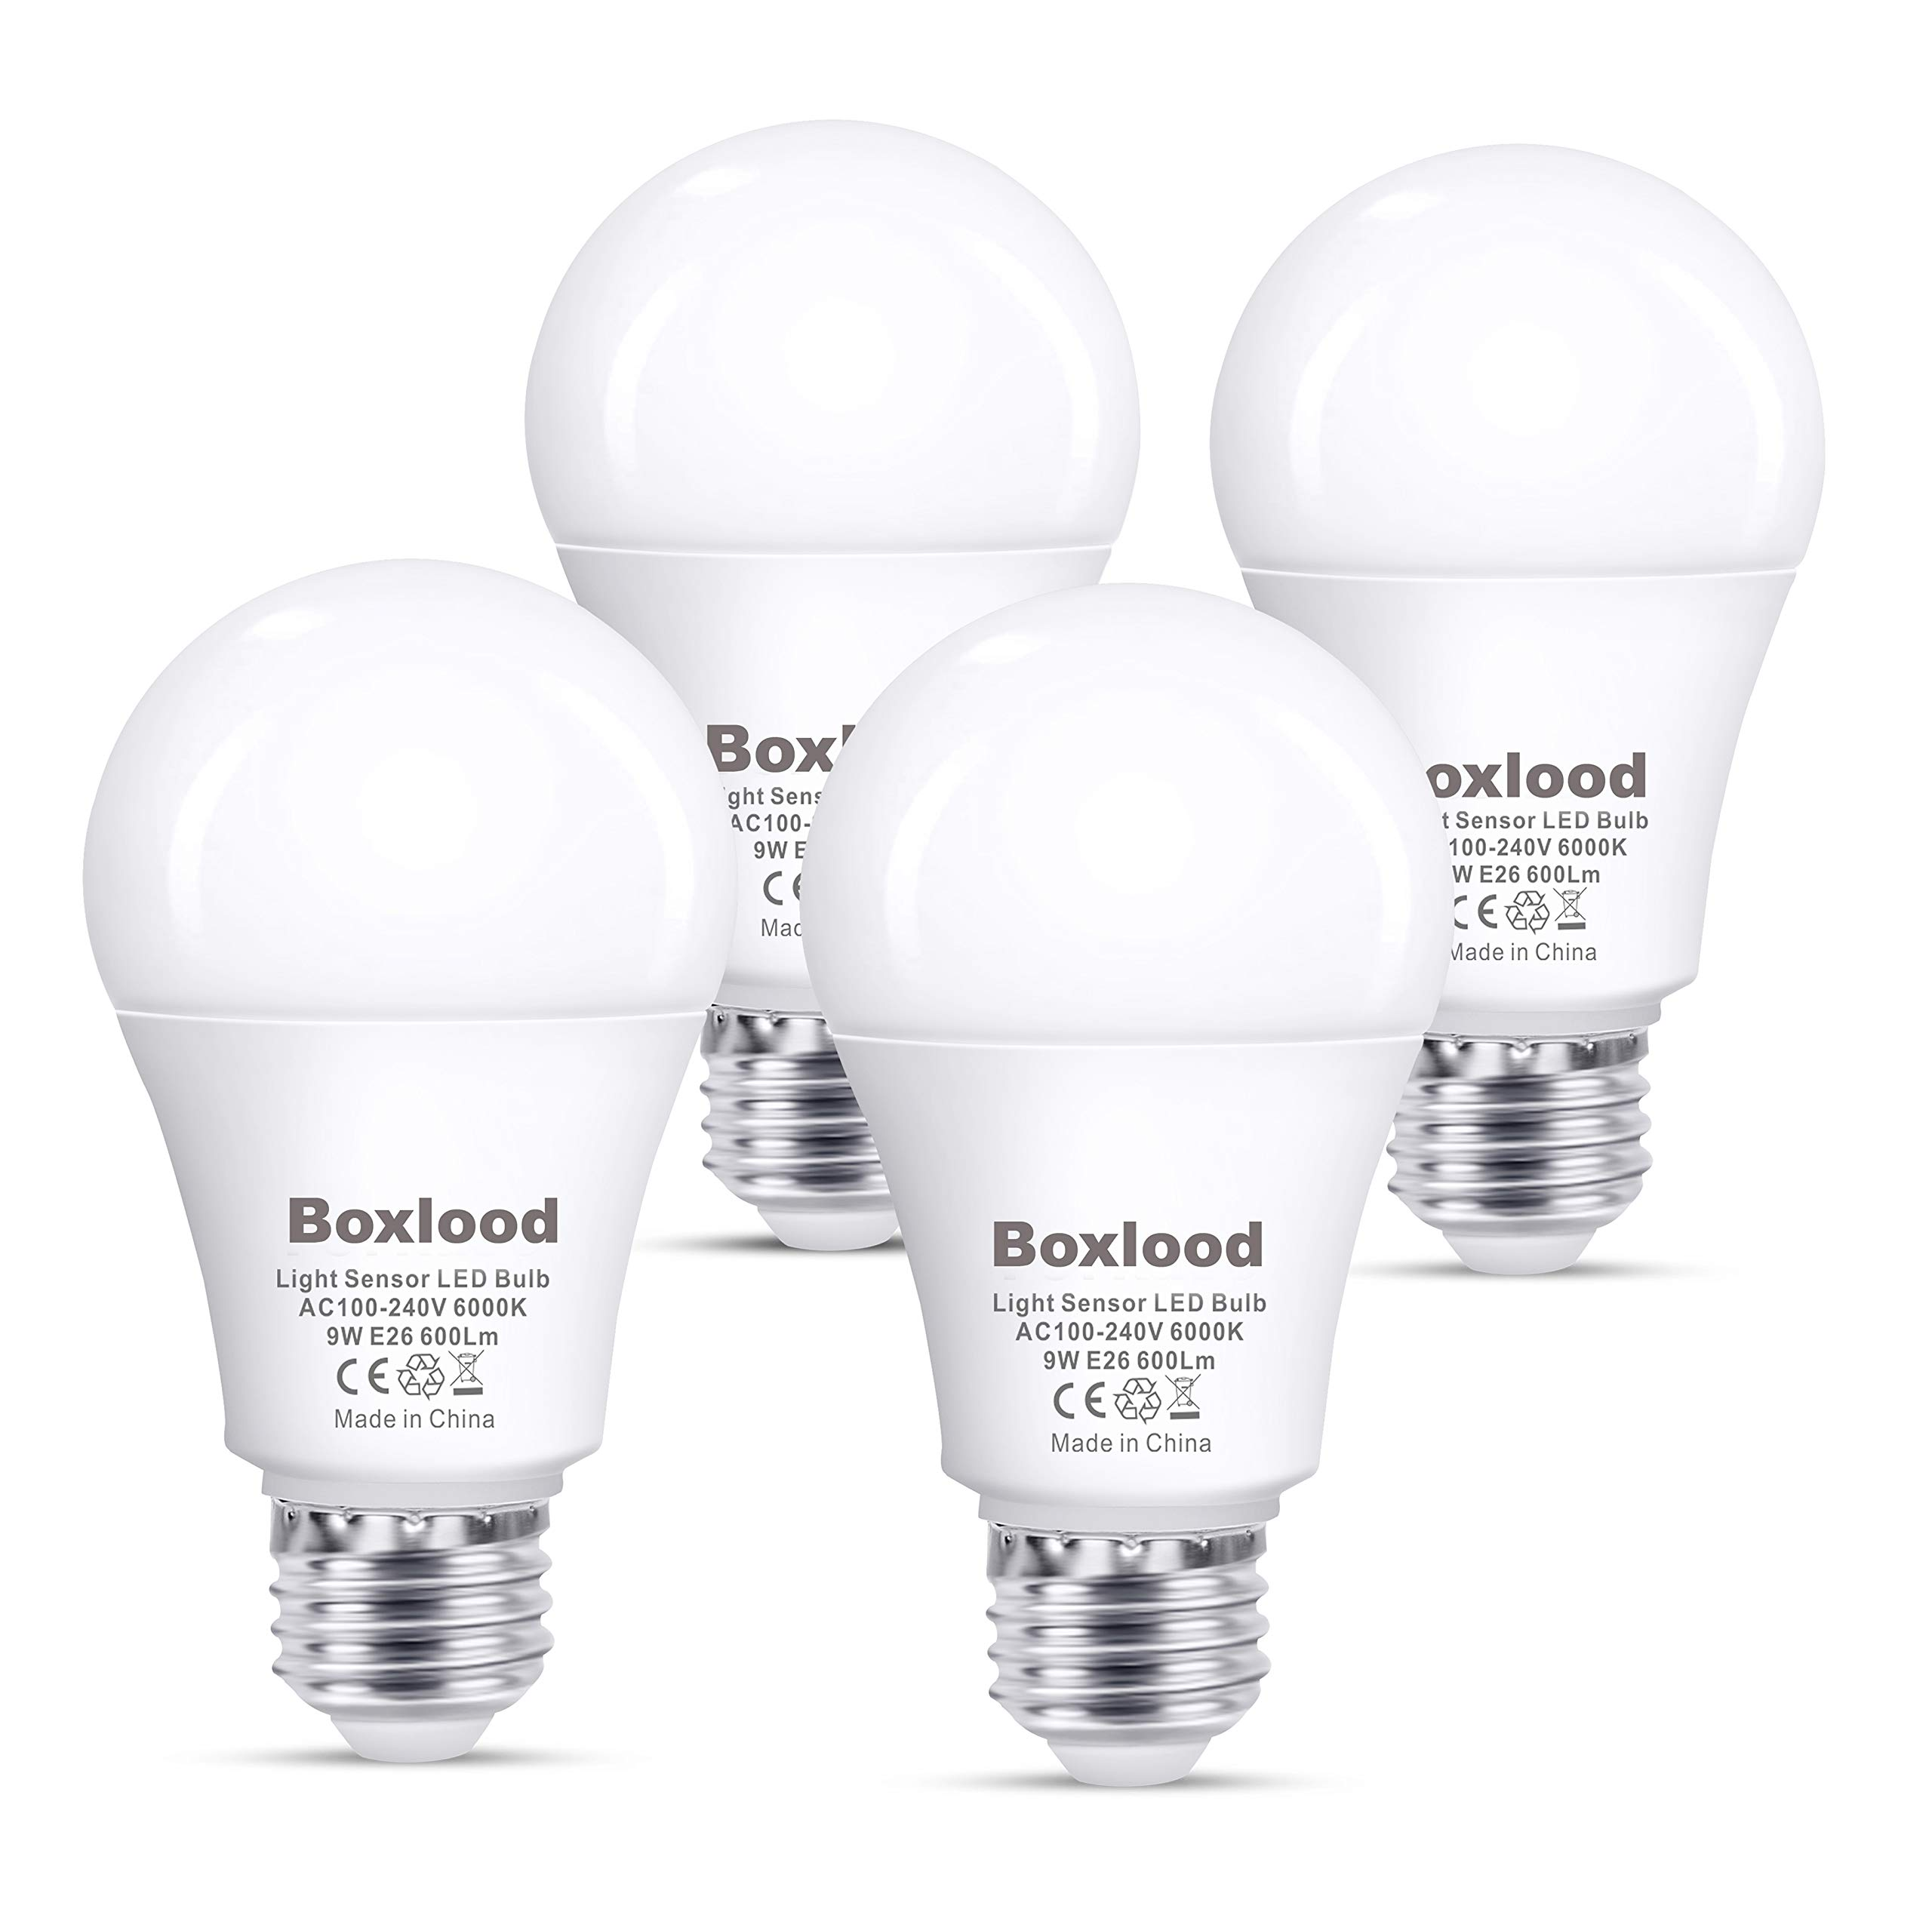 Dusk to Dawn Light Bulbs, E26, 60W Equivalent, AC100-240V, 6000K Cool White Auto On/Off Indoor/Outdoor Sensor LED Bulb by Boxlood (4 Pack) Price: $21.22